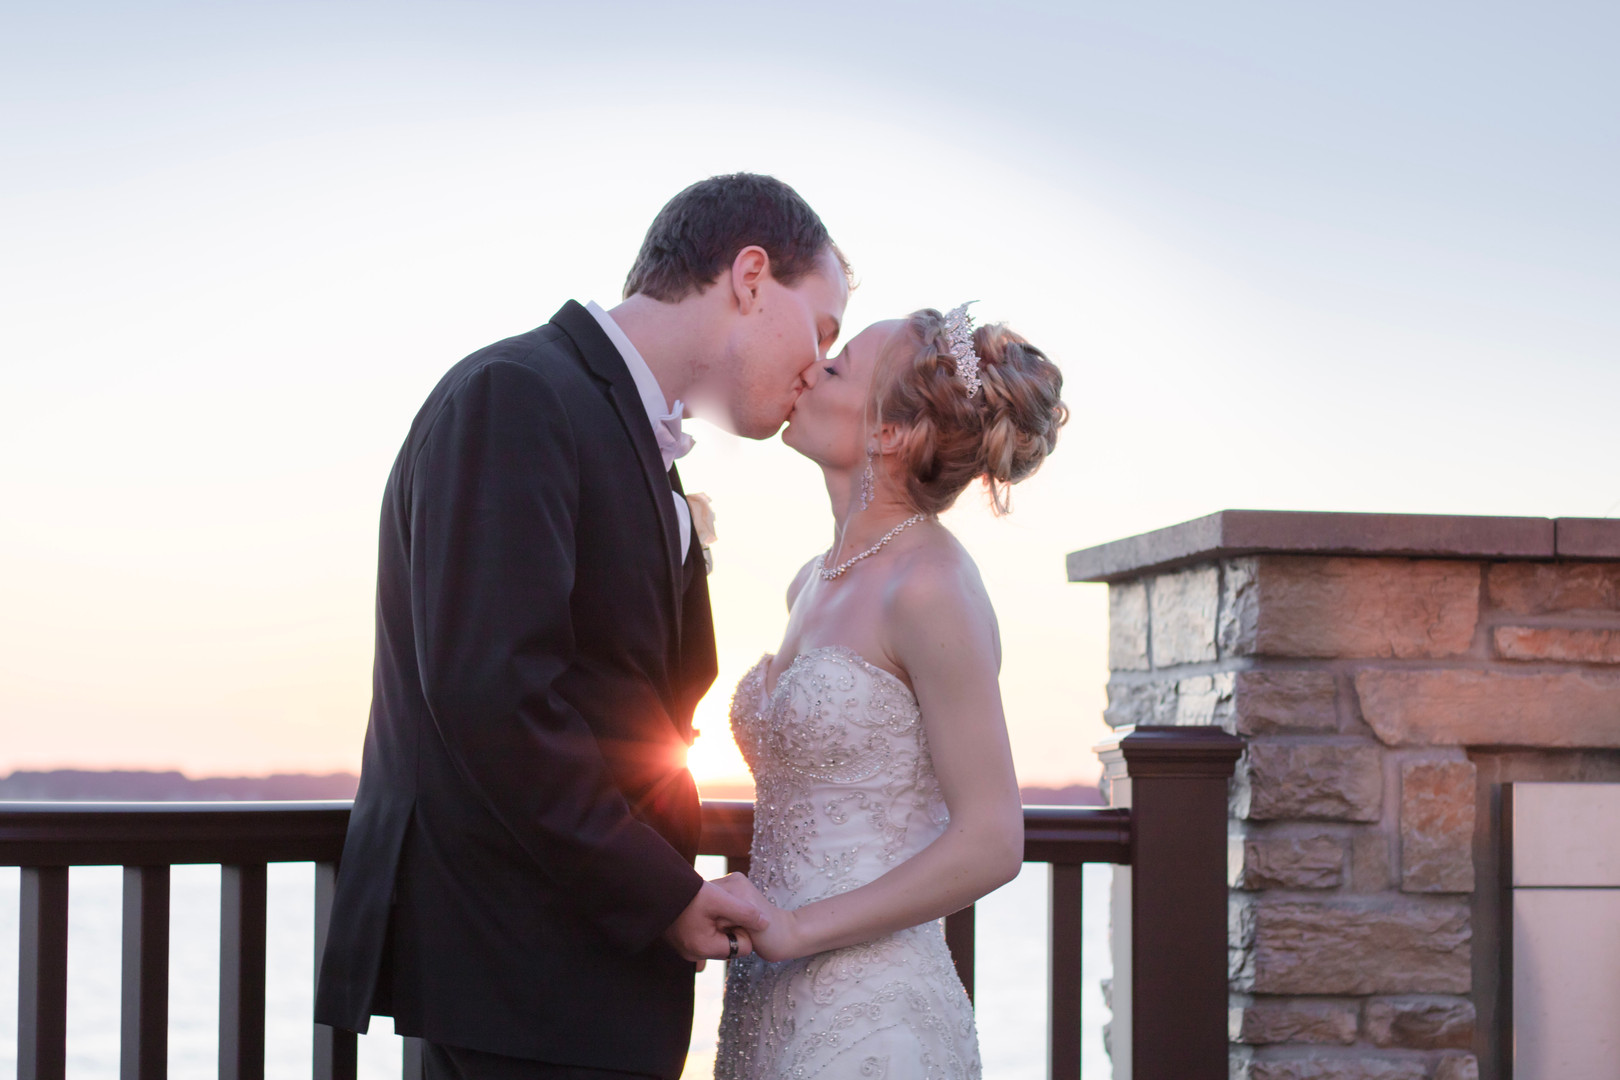 newport-sunset-kiss-wedding-venue.jpg